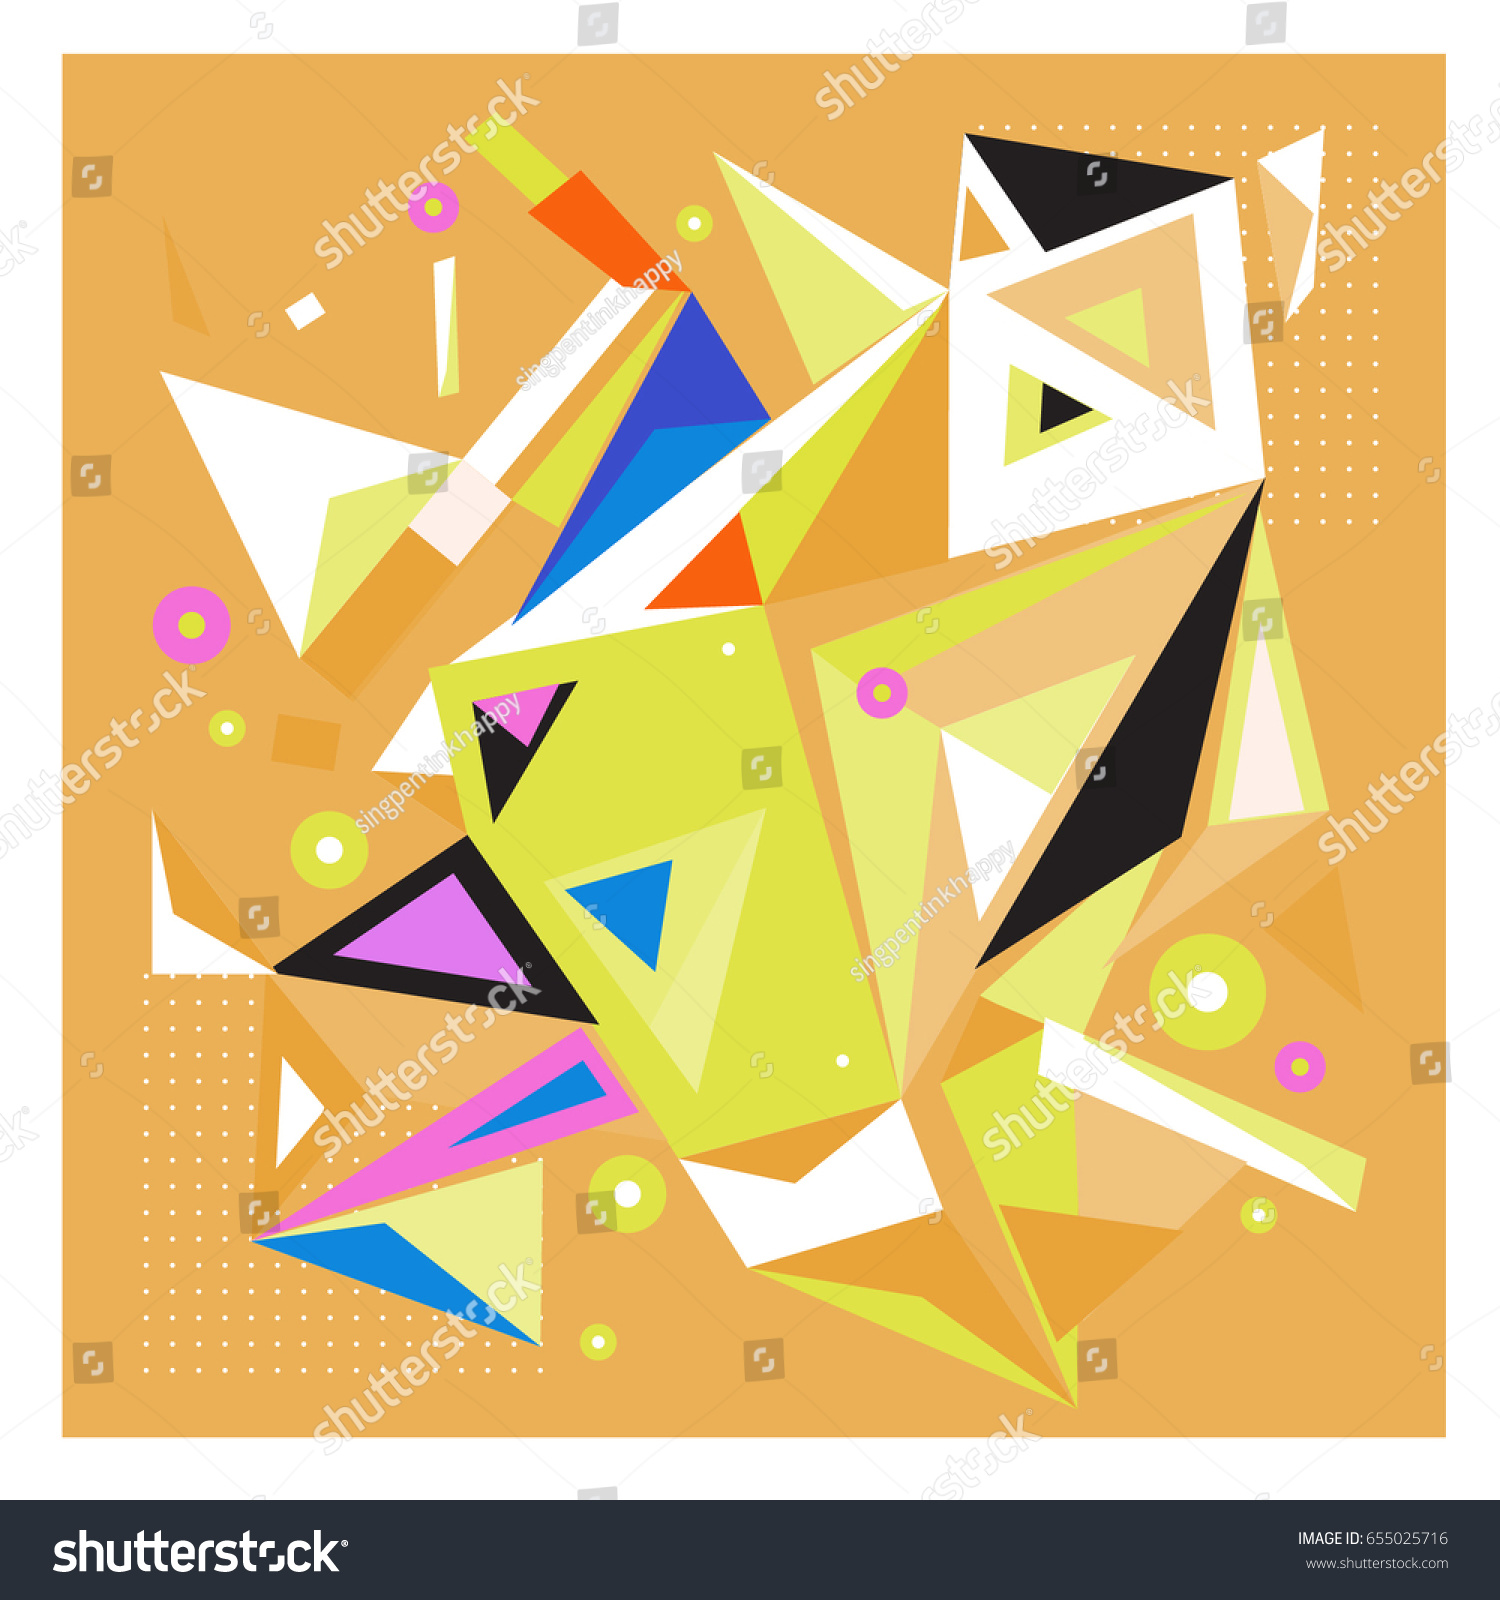 vector of triangle geometric 3d forms modern info banner abstract backgrounds for poster message